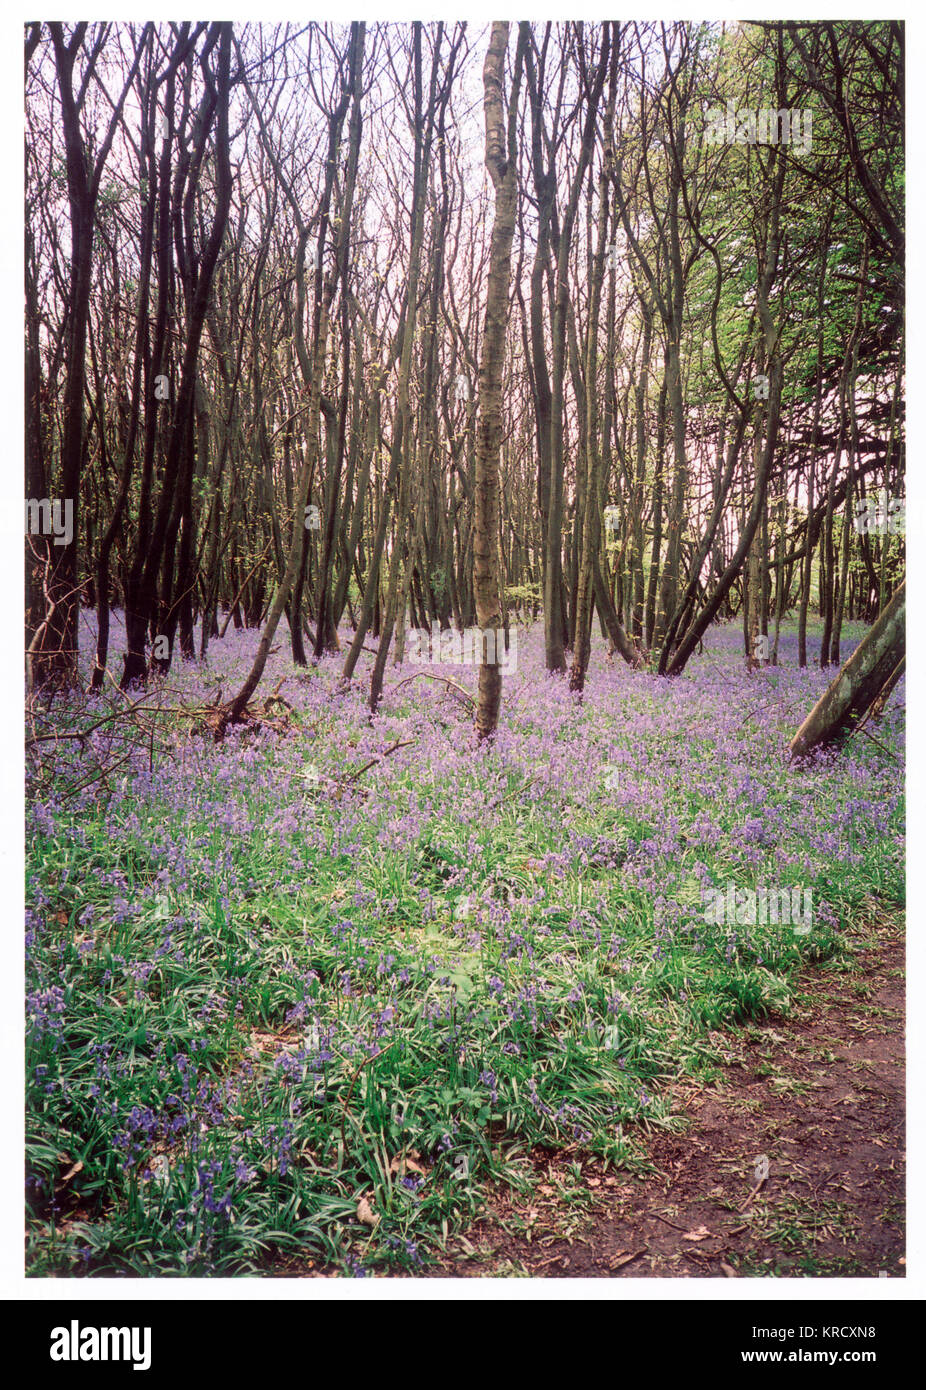 Spring time in an English  woodland. The ground beneath  the narrow trunks of the  coppiced trees is carpeted  with - Stock Image